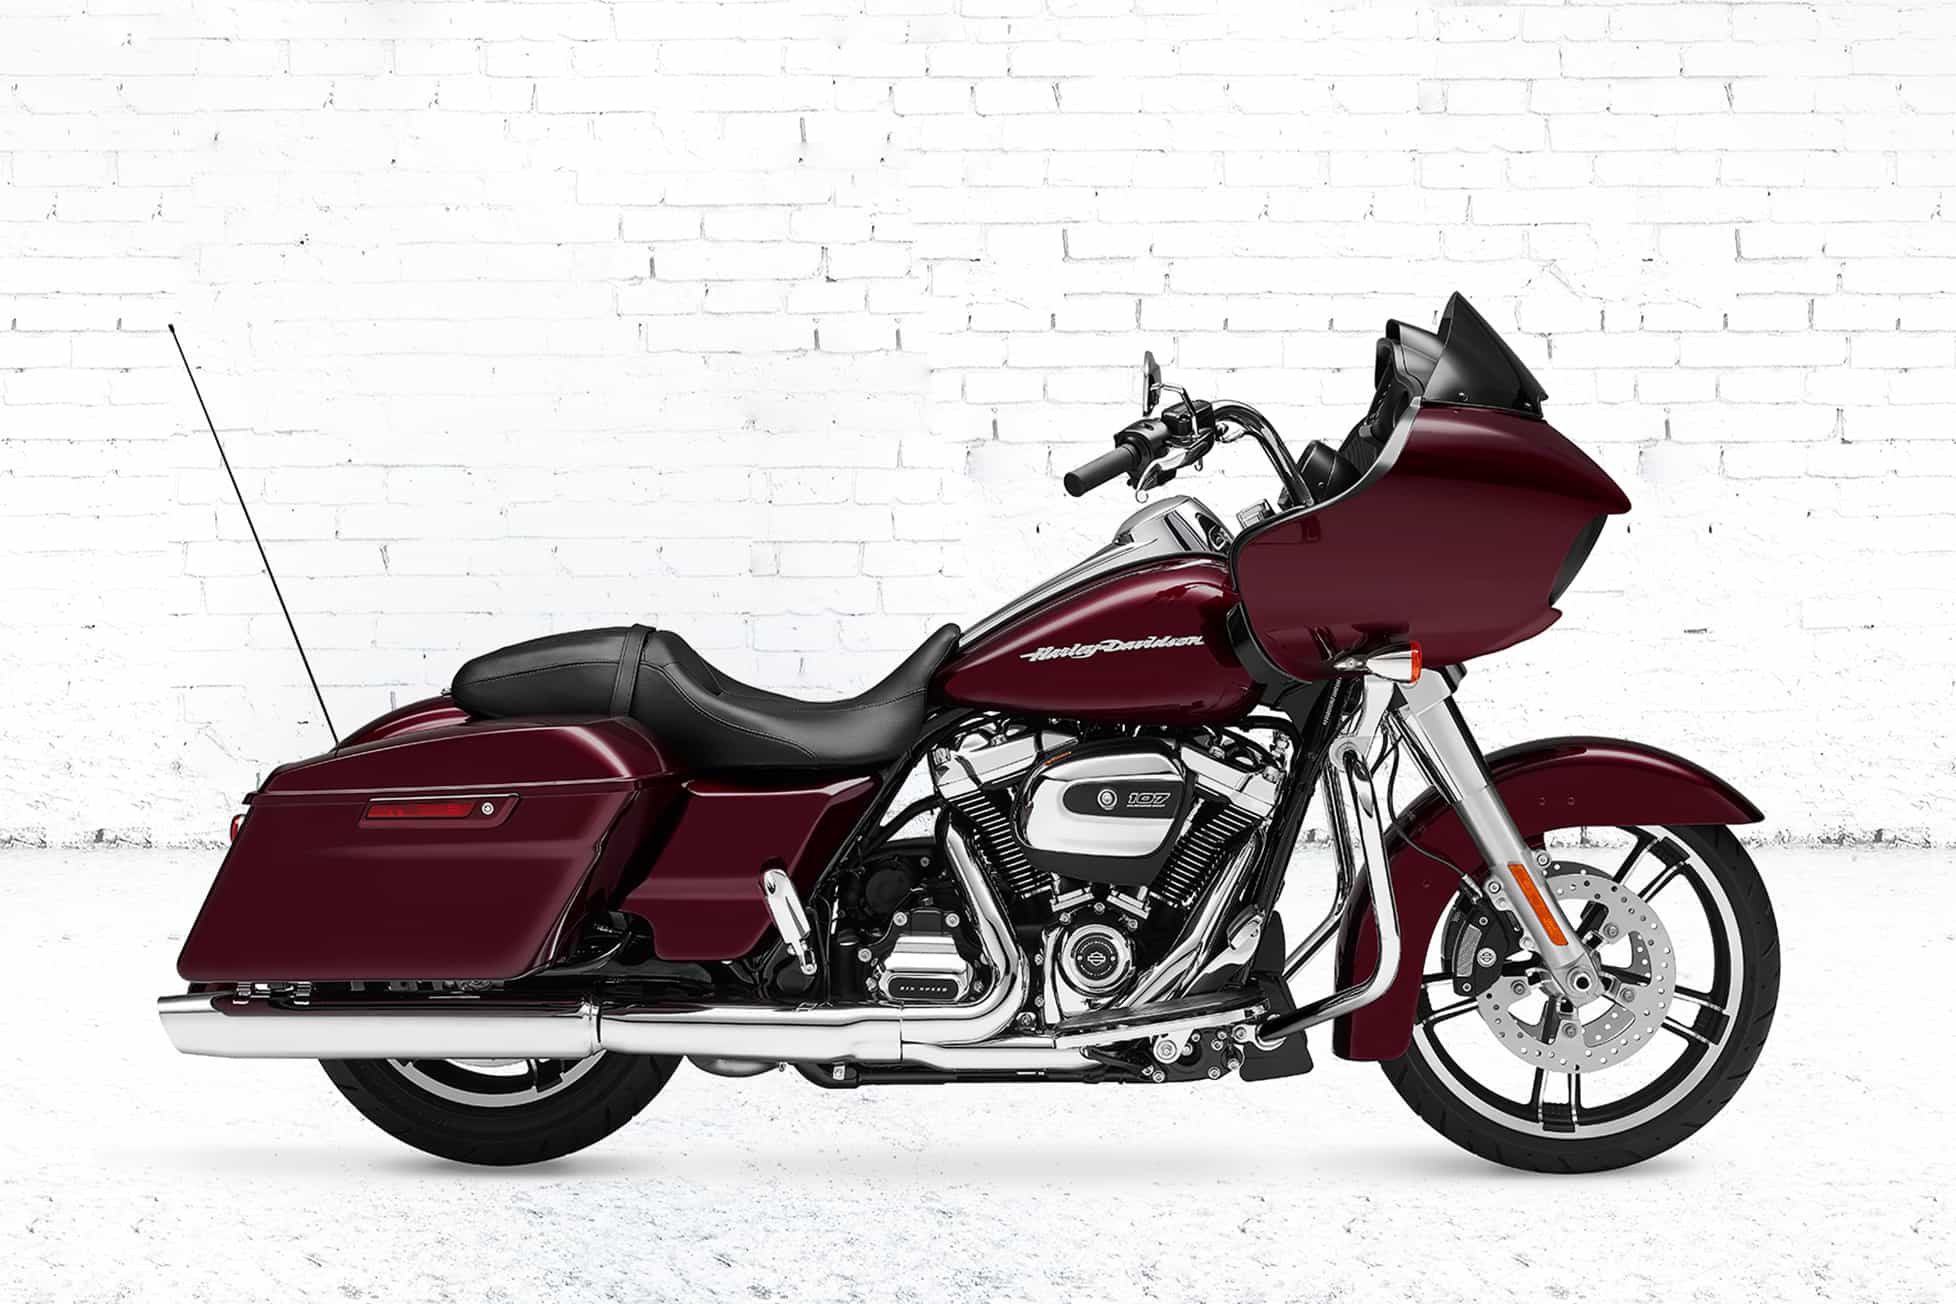 2018 touring road glide specs pricing harley davidson usa rh harley davidson com 2014 Road Glide 2013 road glide ultra service manual